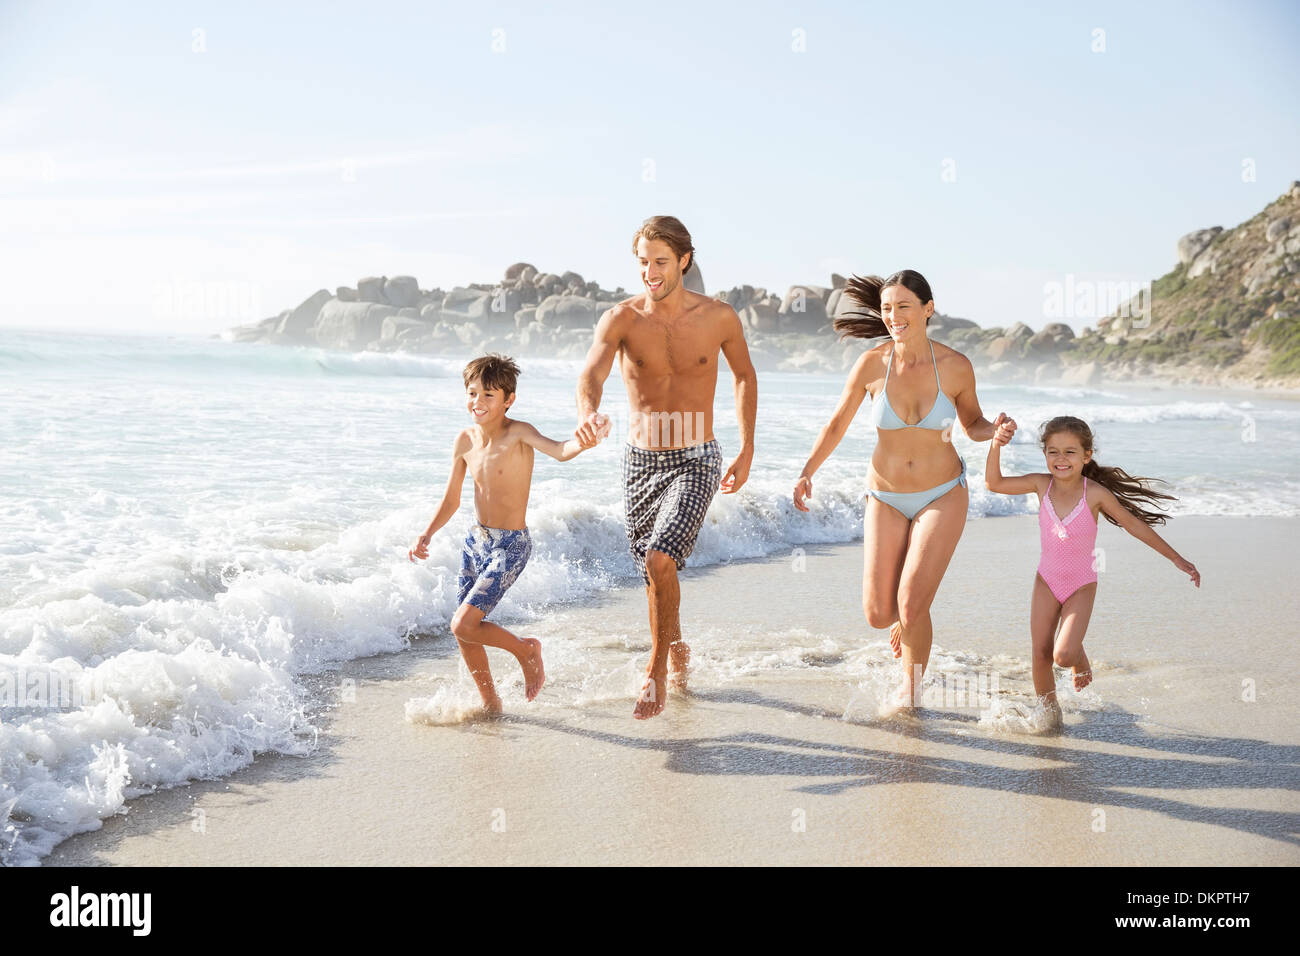 Family running together in waves - Stock Image